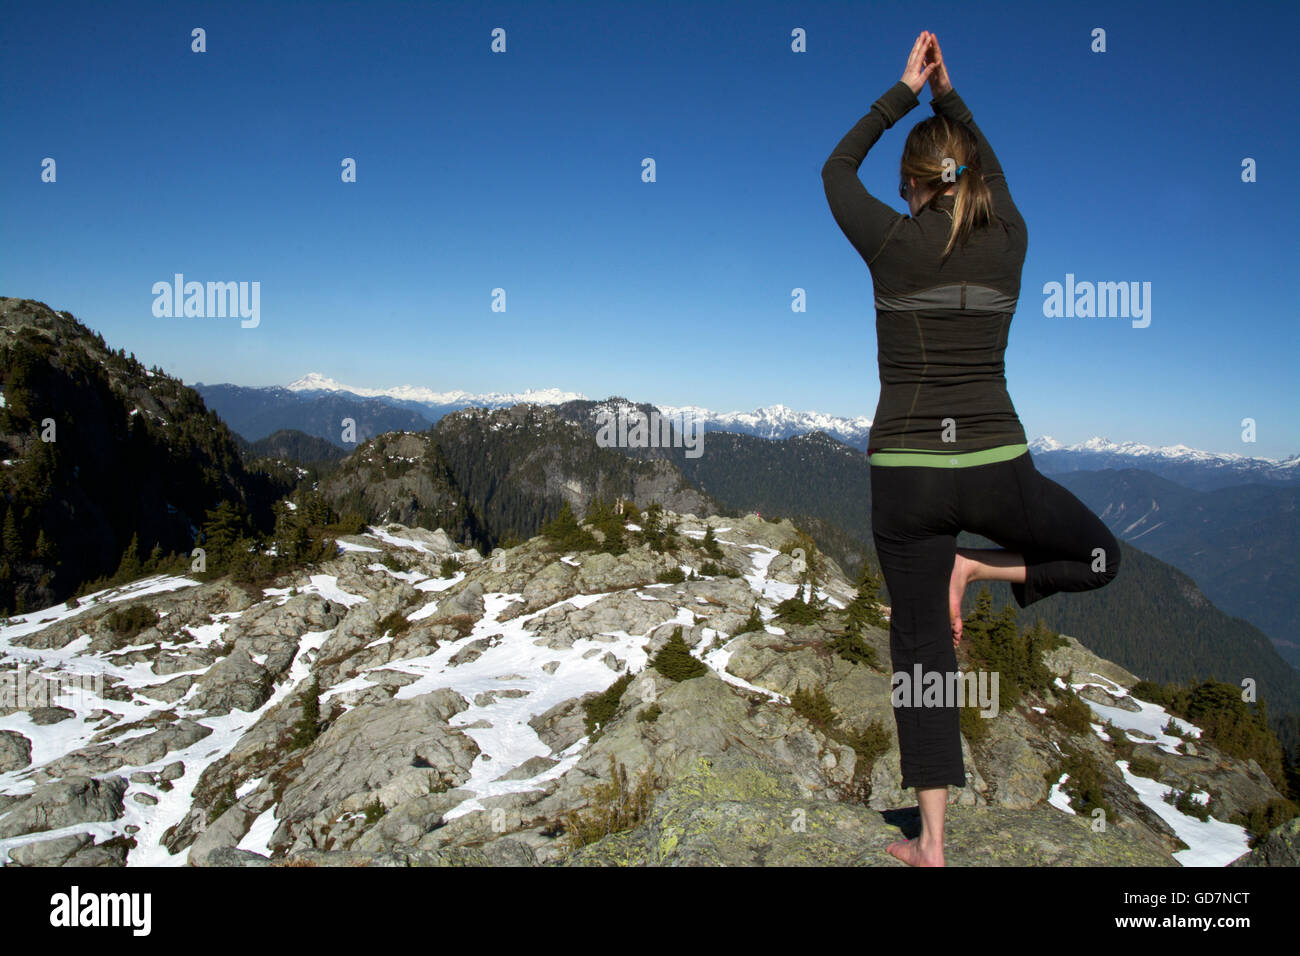 Middle-Aged Caucasian Woman Holding Hatha Yoga Tree Pose on Winter Snowcap Sunshine BC Mountain Peaks with Blue - Stock Image